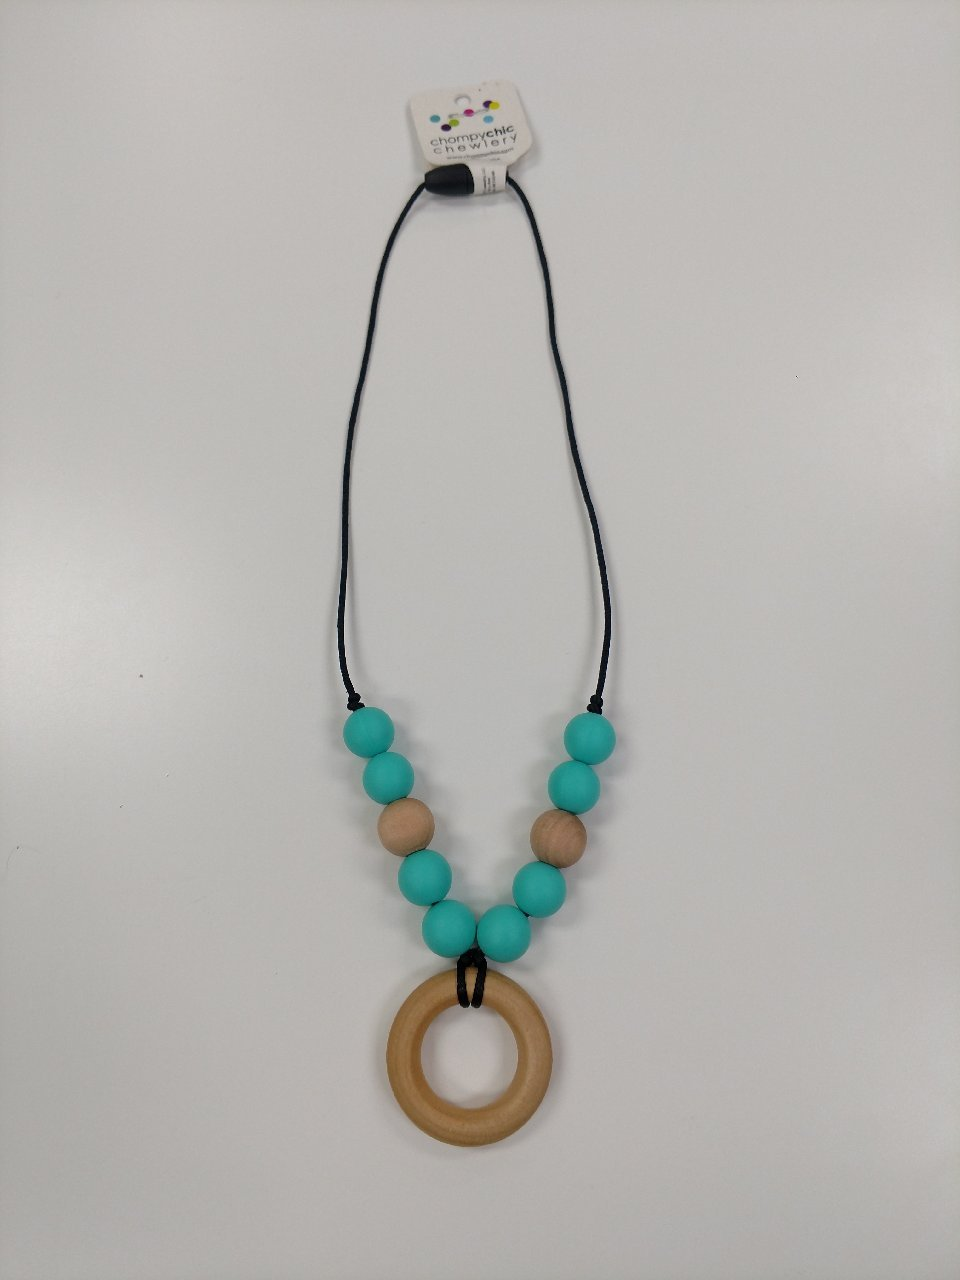 Chompy Chic Kids Wooden Ring With Silicon Necklace